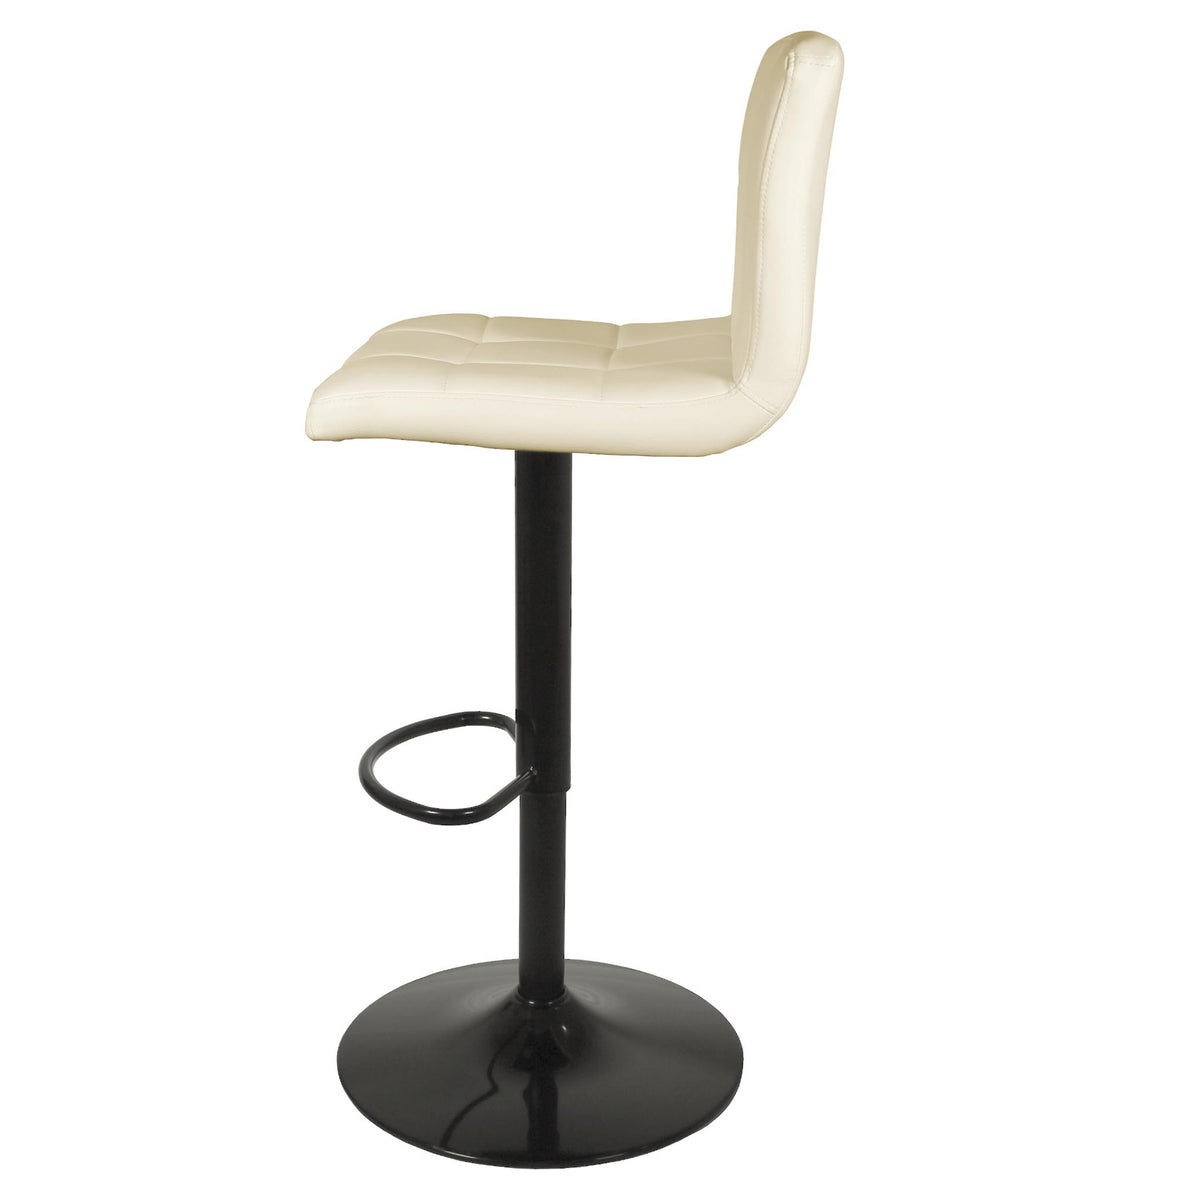 Side view of the Vanilla Cream Elton Adjustable Breakfast Bar Stool from Roseland Furniture